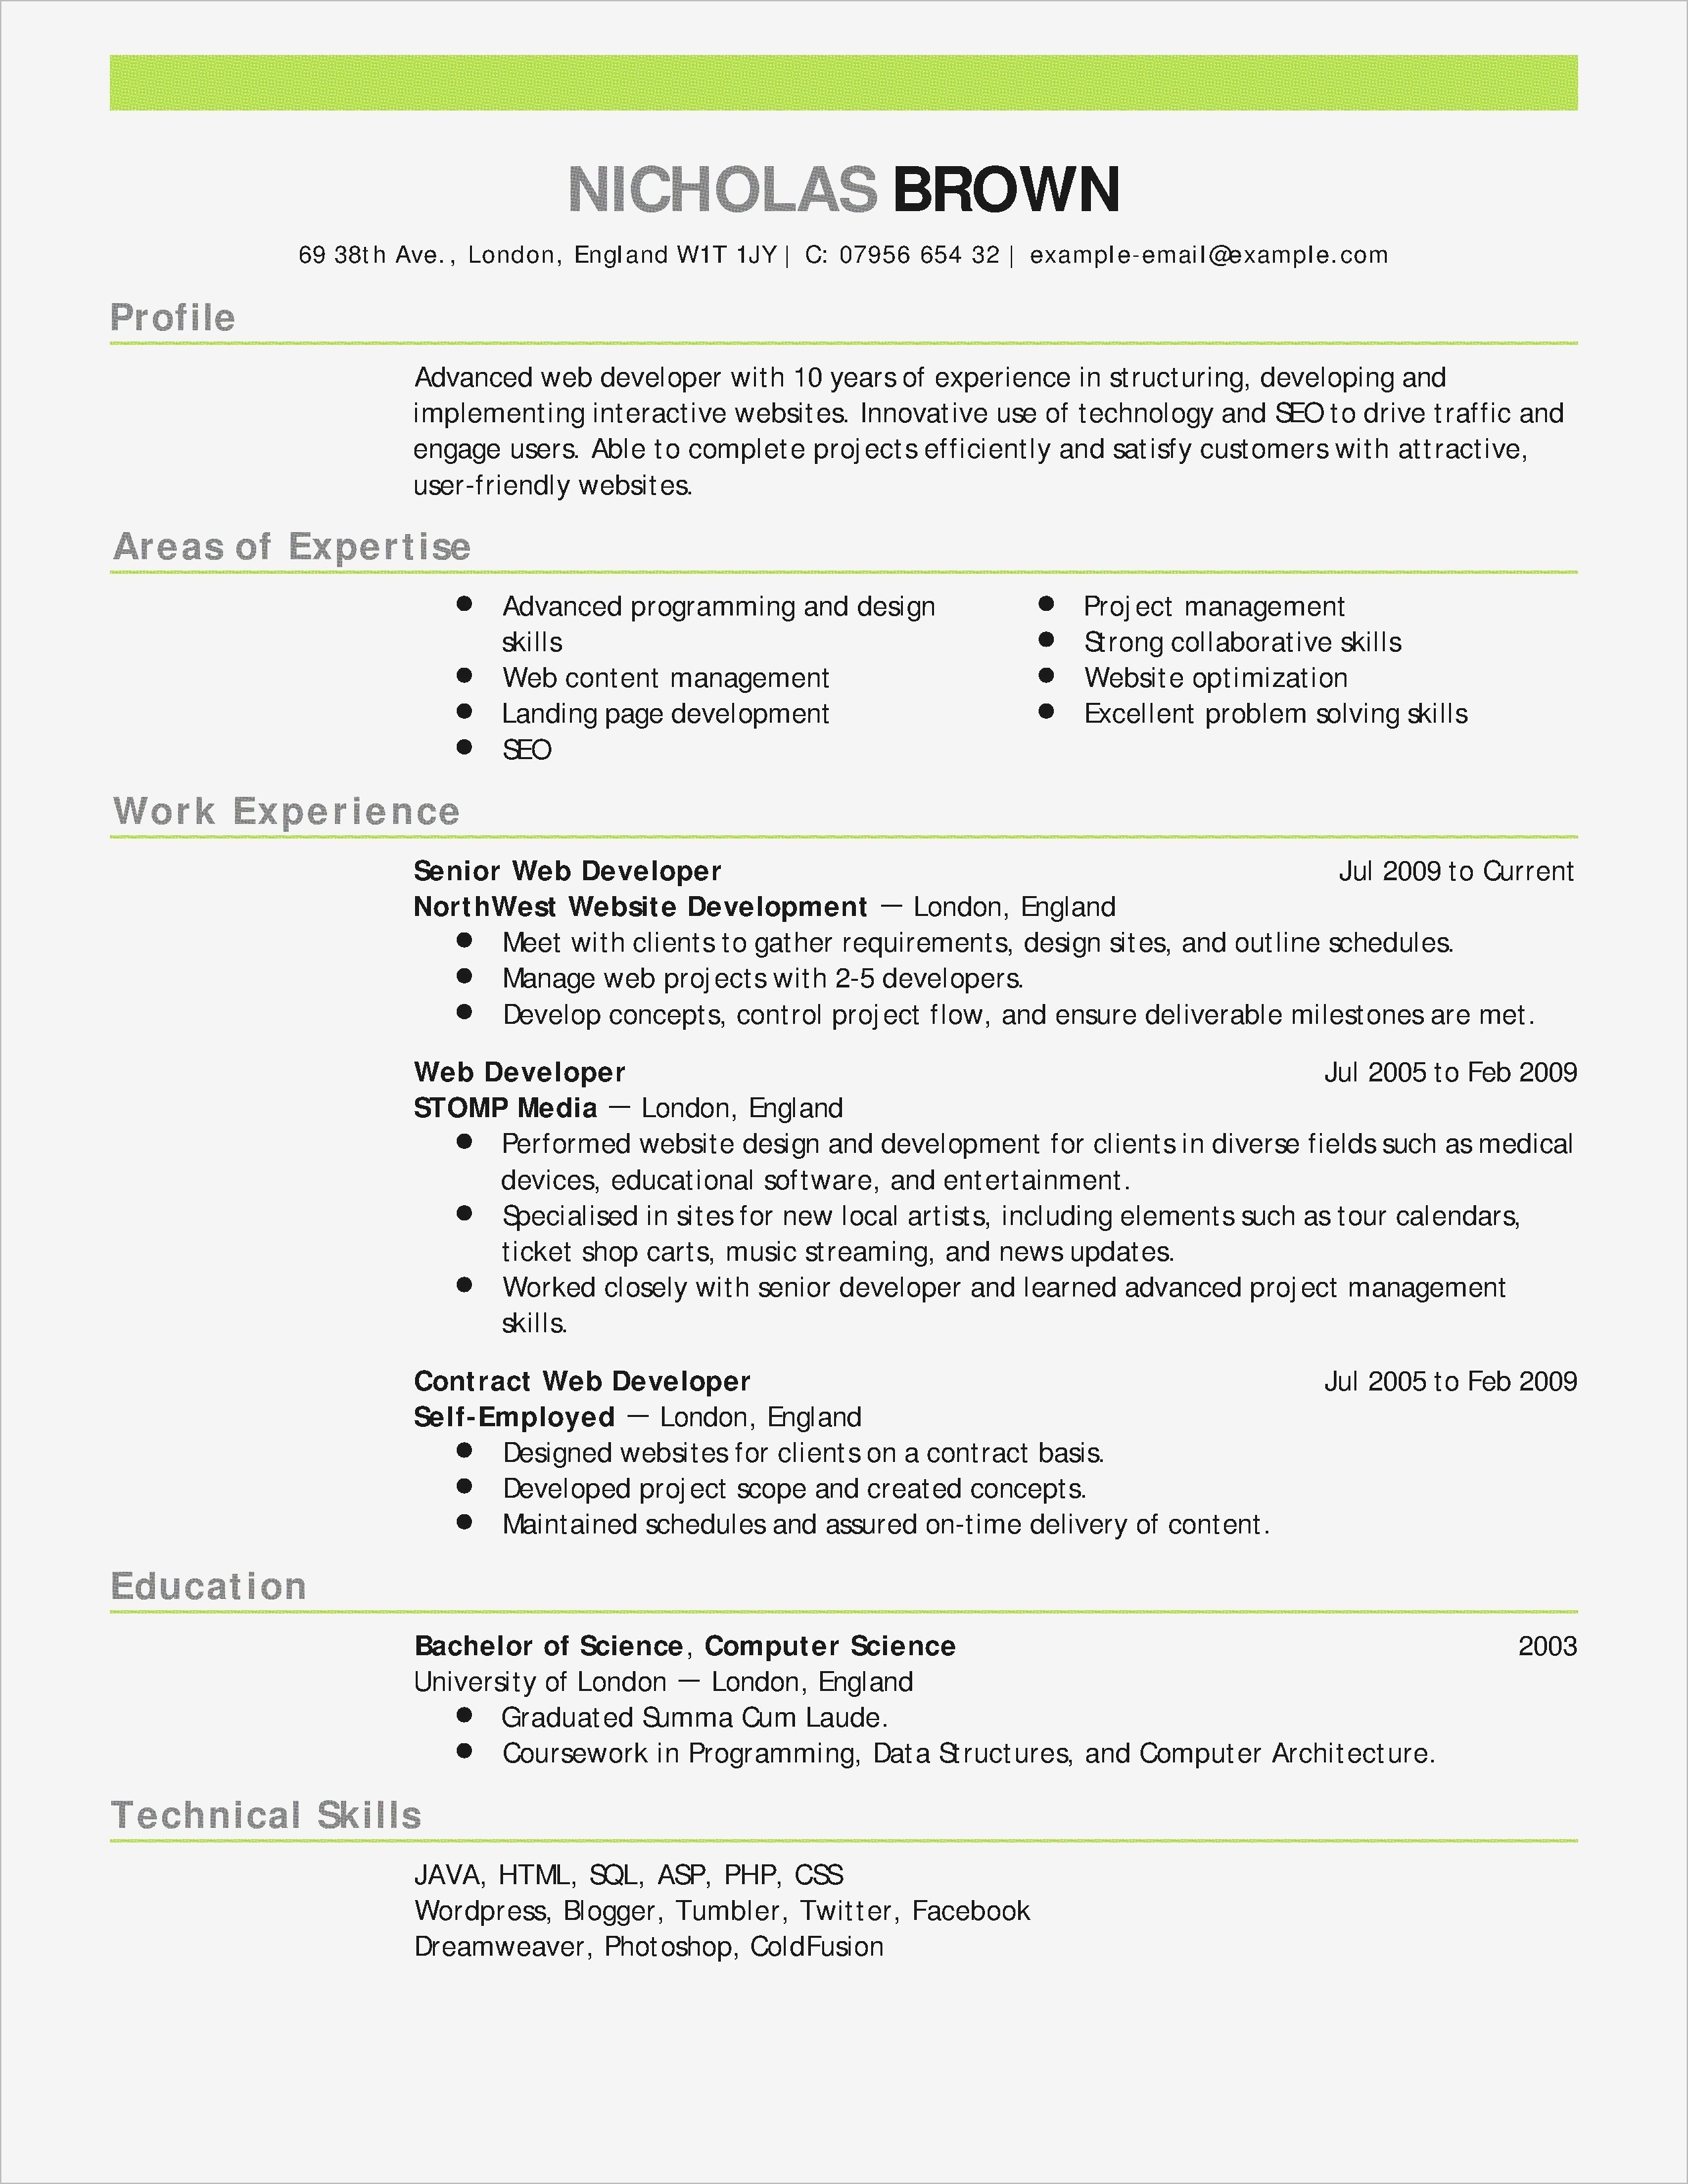 Twitter Resume Template - Email Resume Template Fresh Free Resume Templates Examples Valid